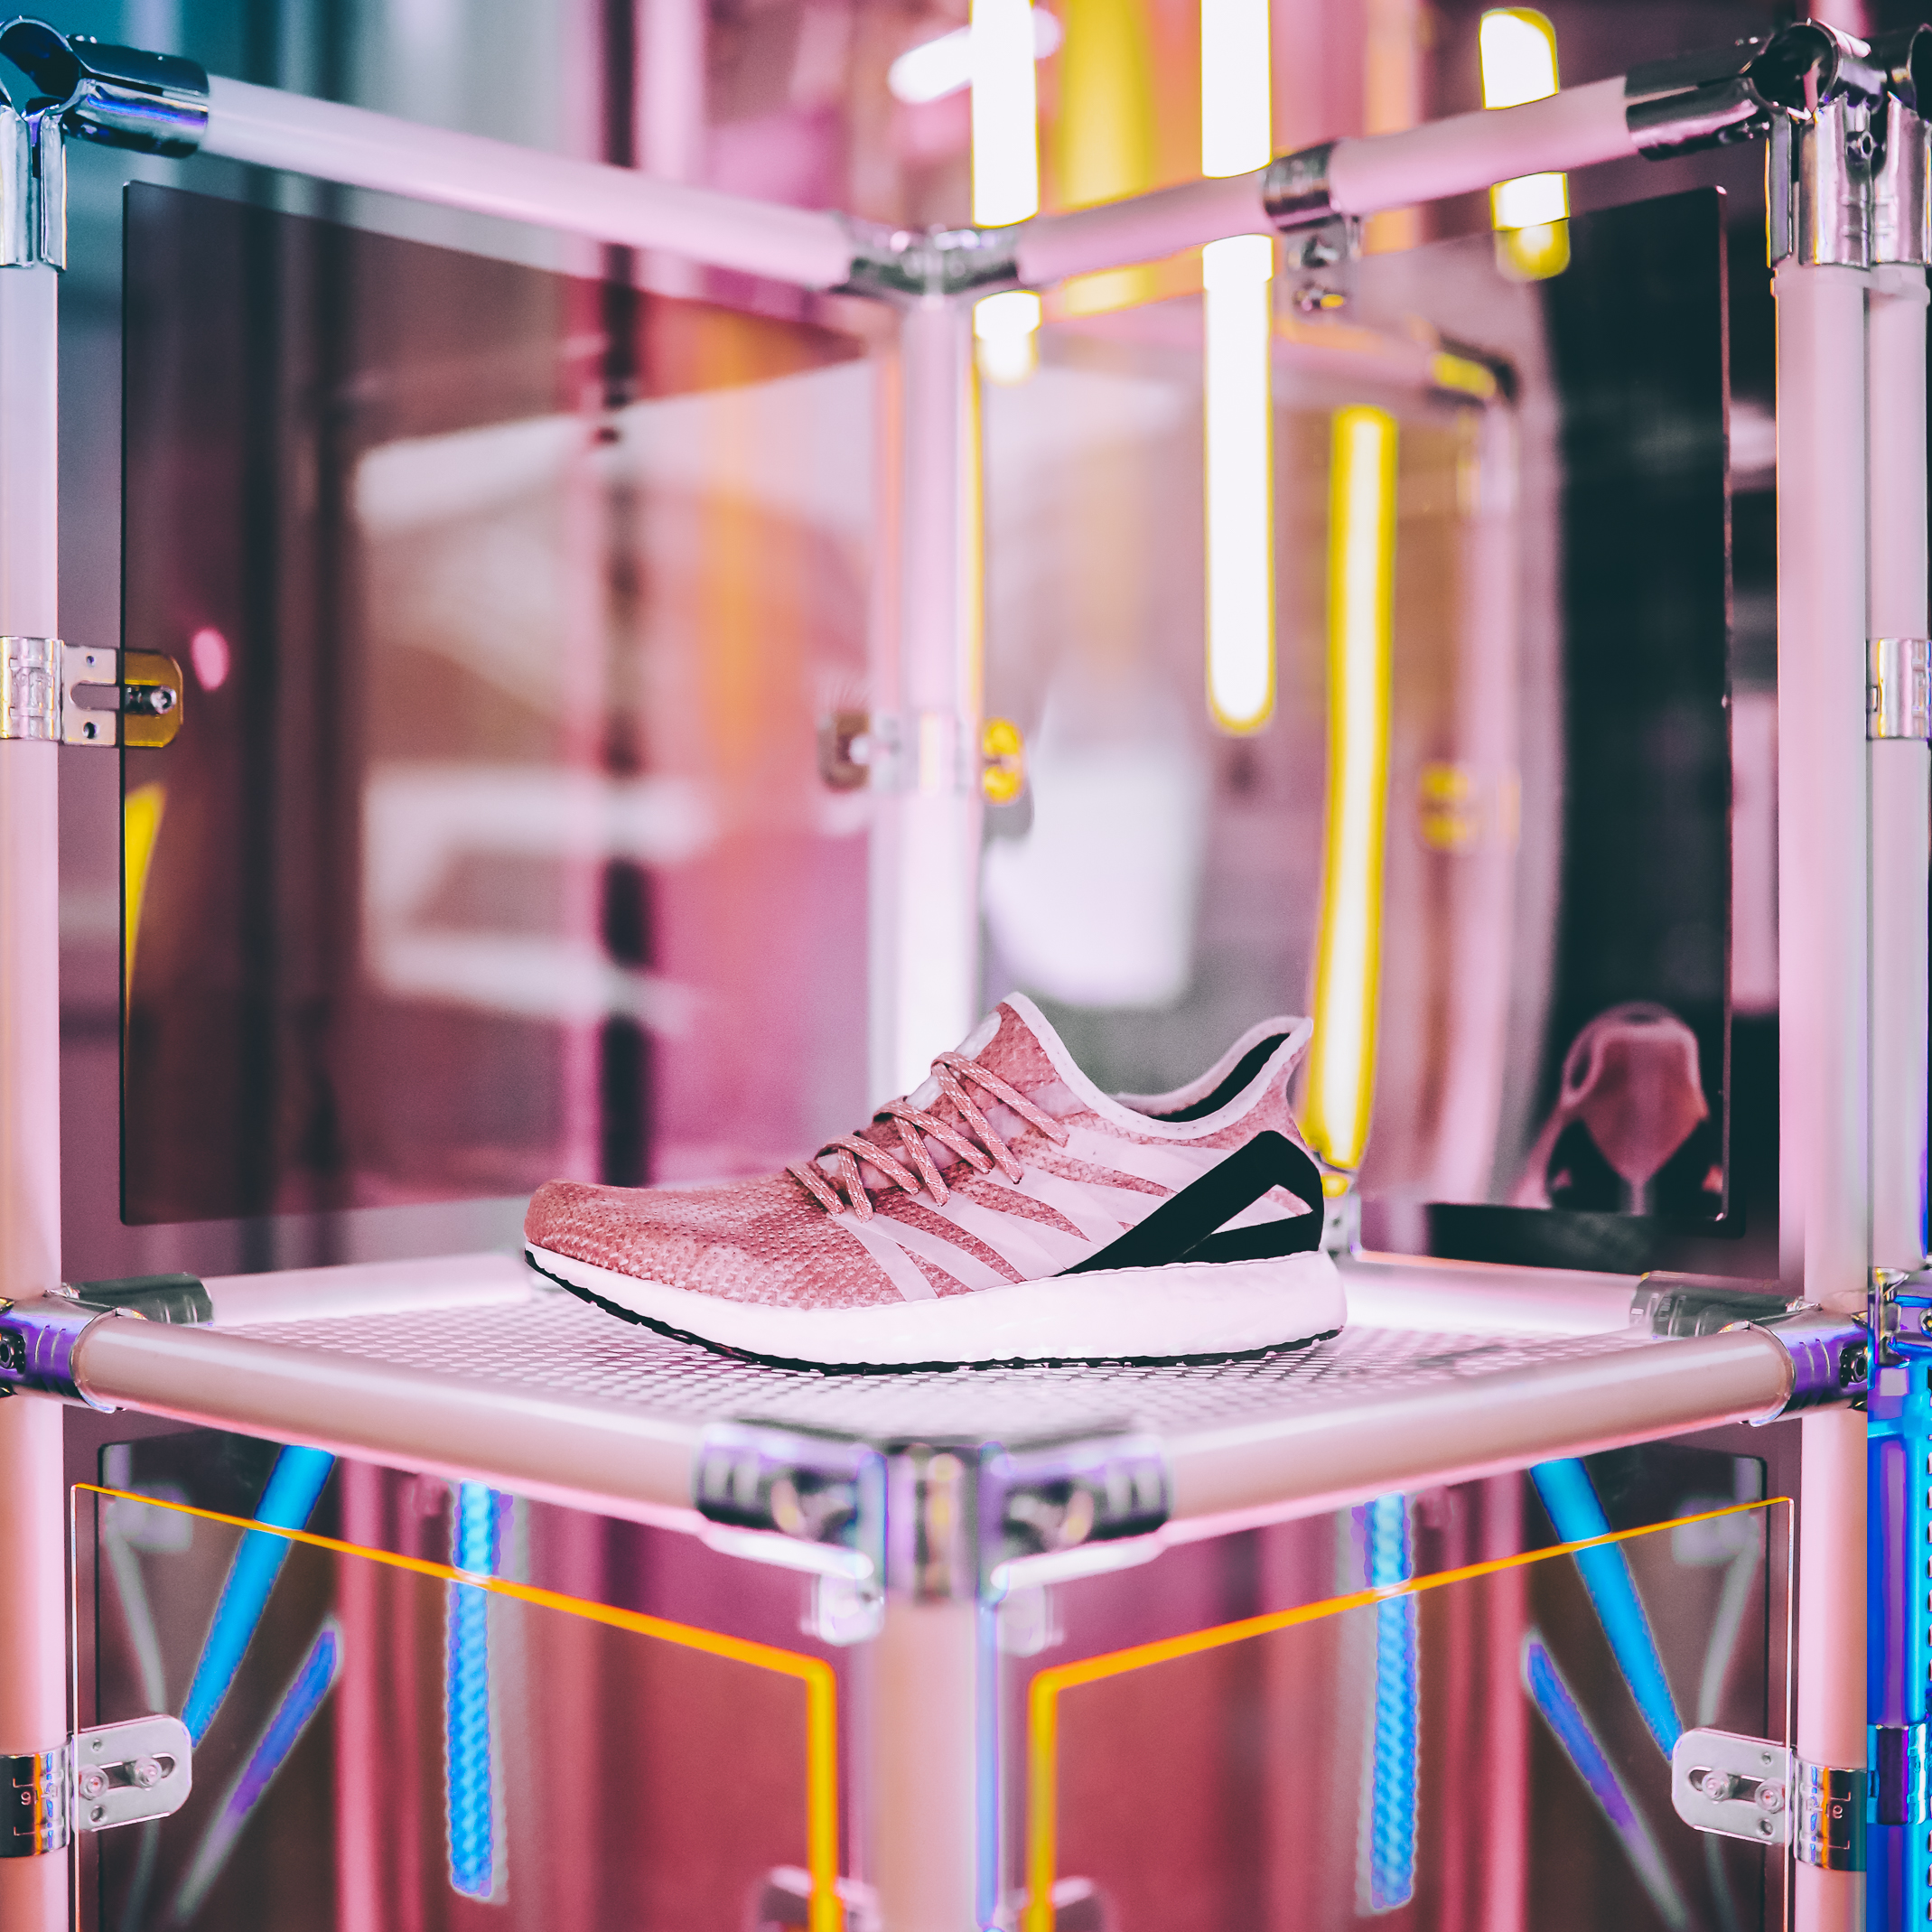 SpeedFactory: a futuristic and innovative experience by adidas (6 pics)